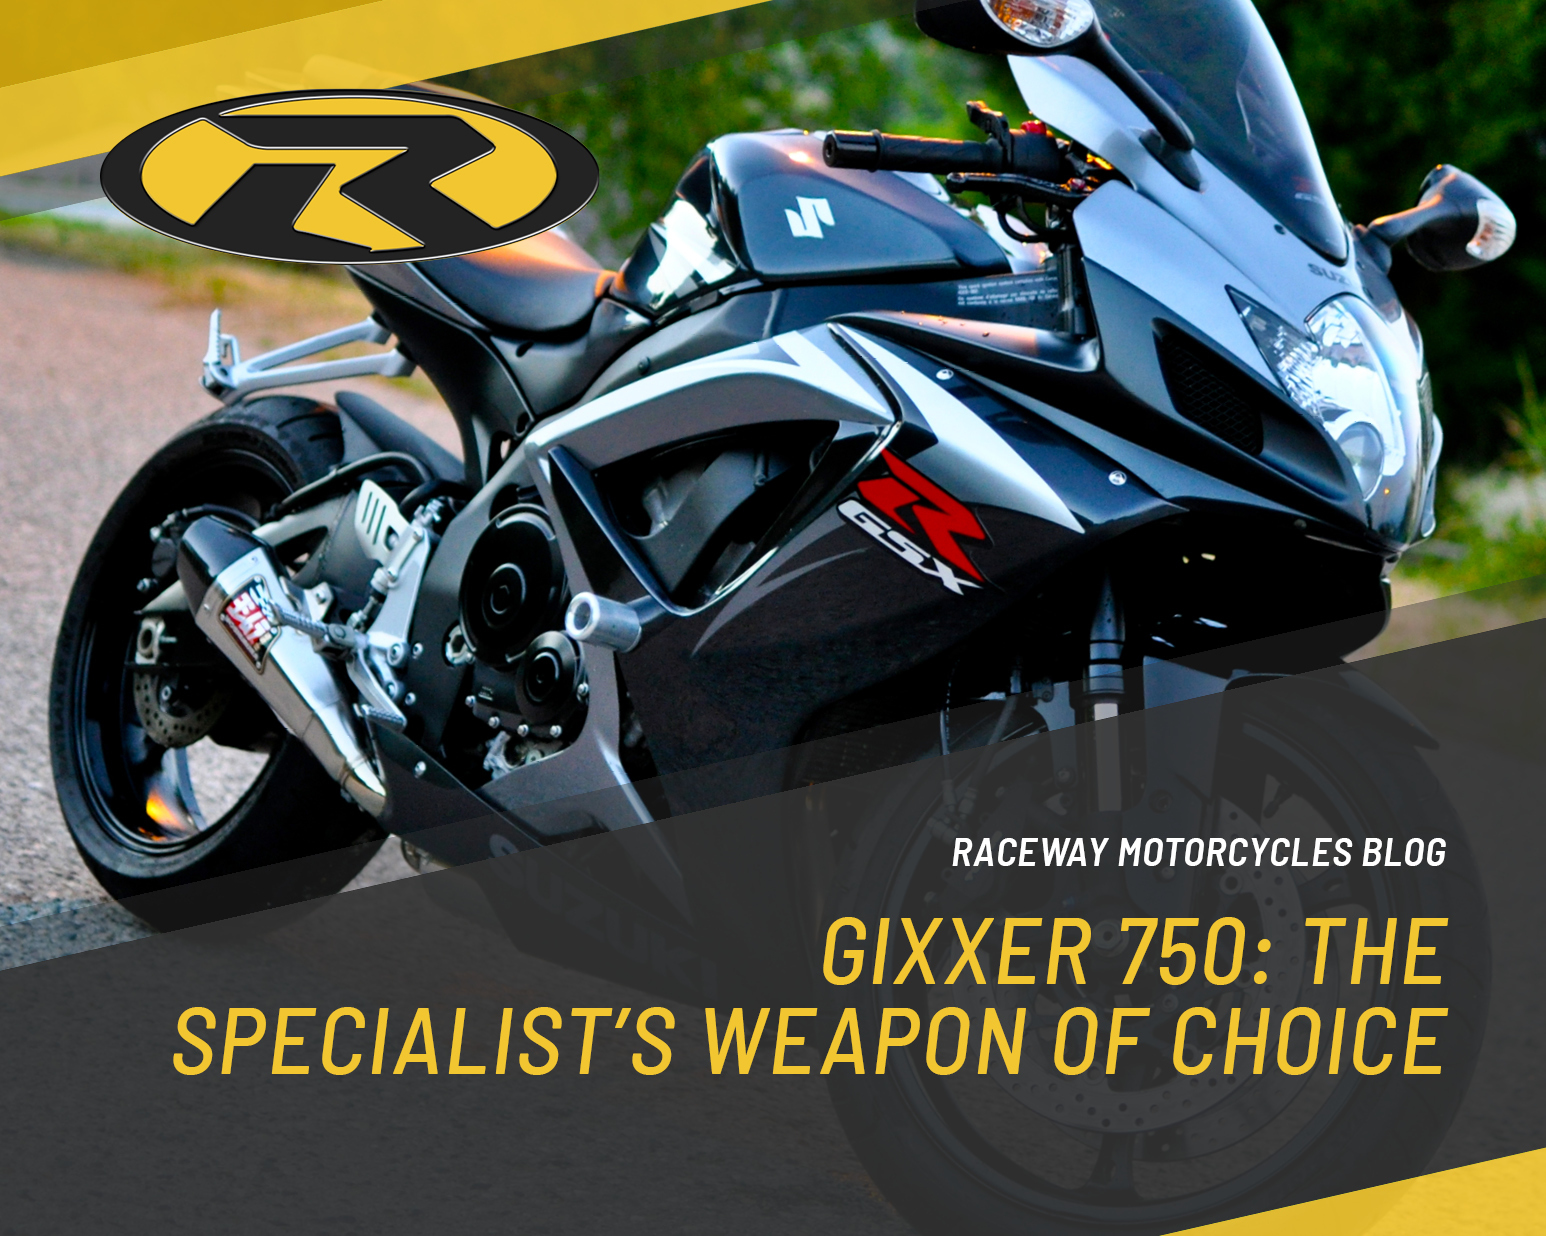 Gixxer 750: The Specialist's Weapon Of Choice